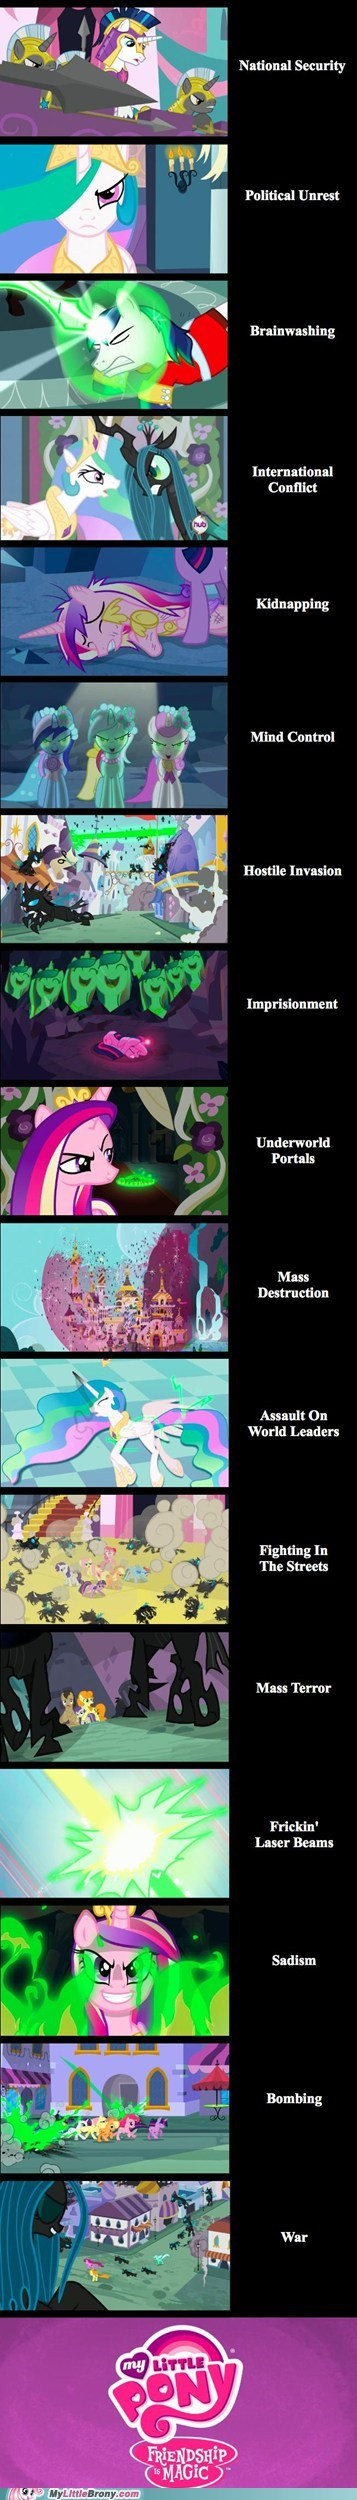 awesome changelings epic not just for kids season 2 finale TV - 6148281088